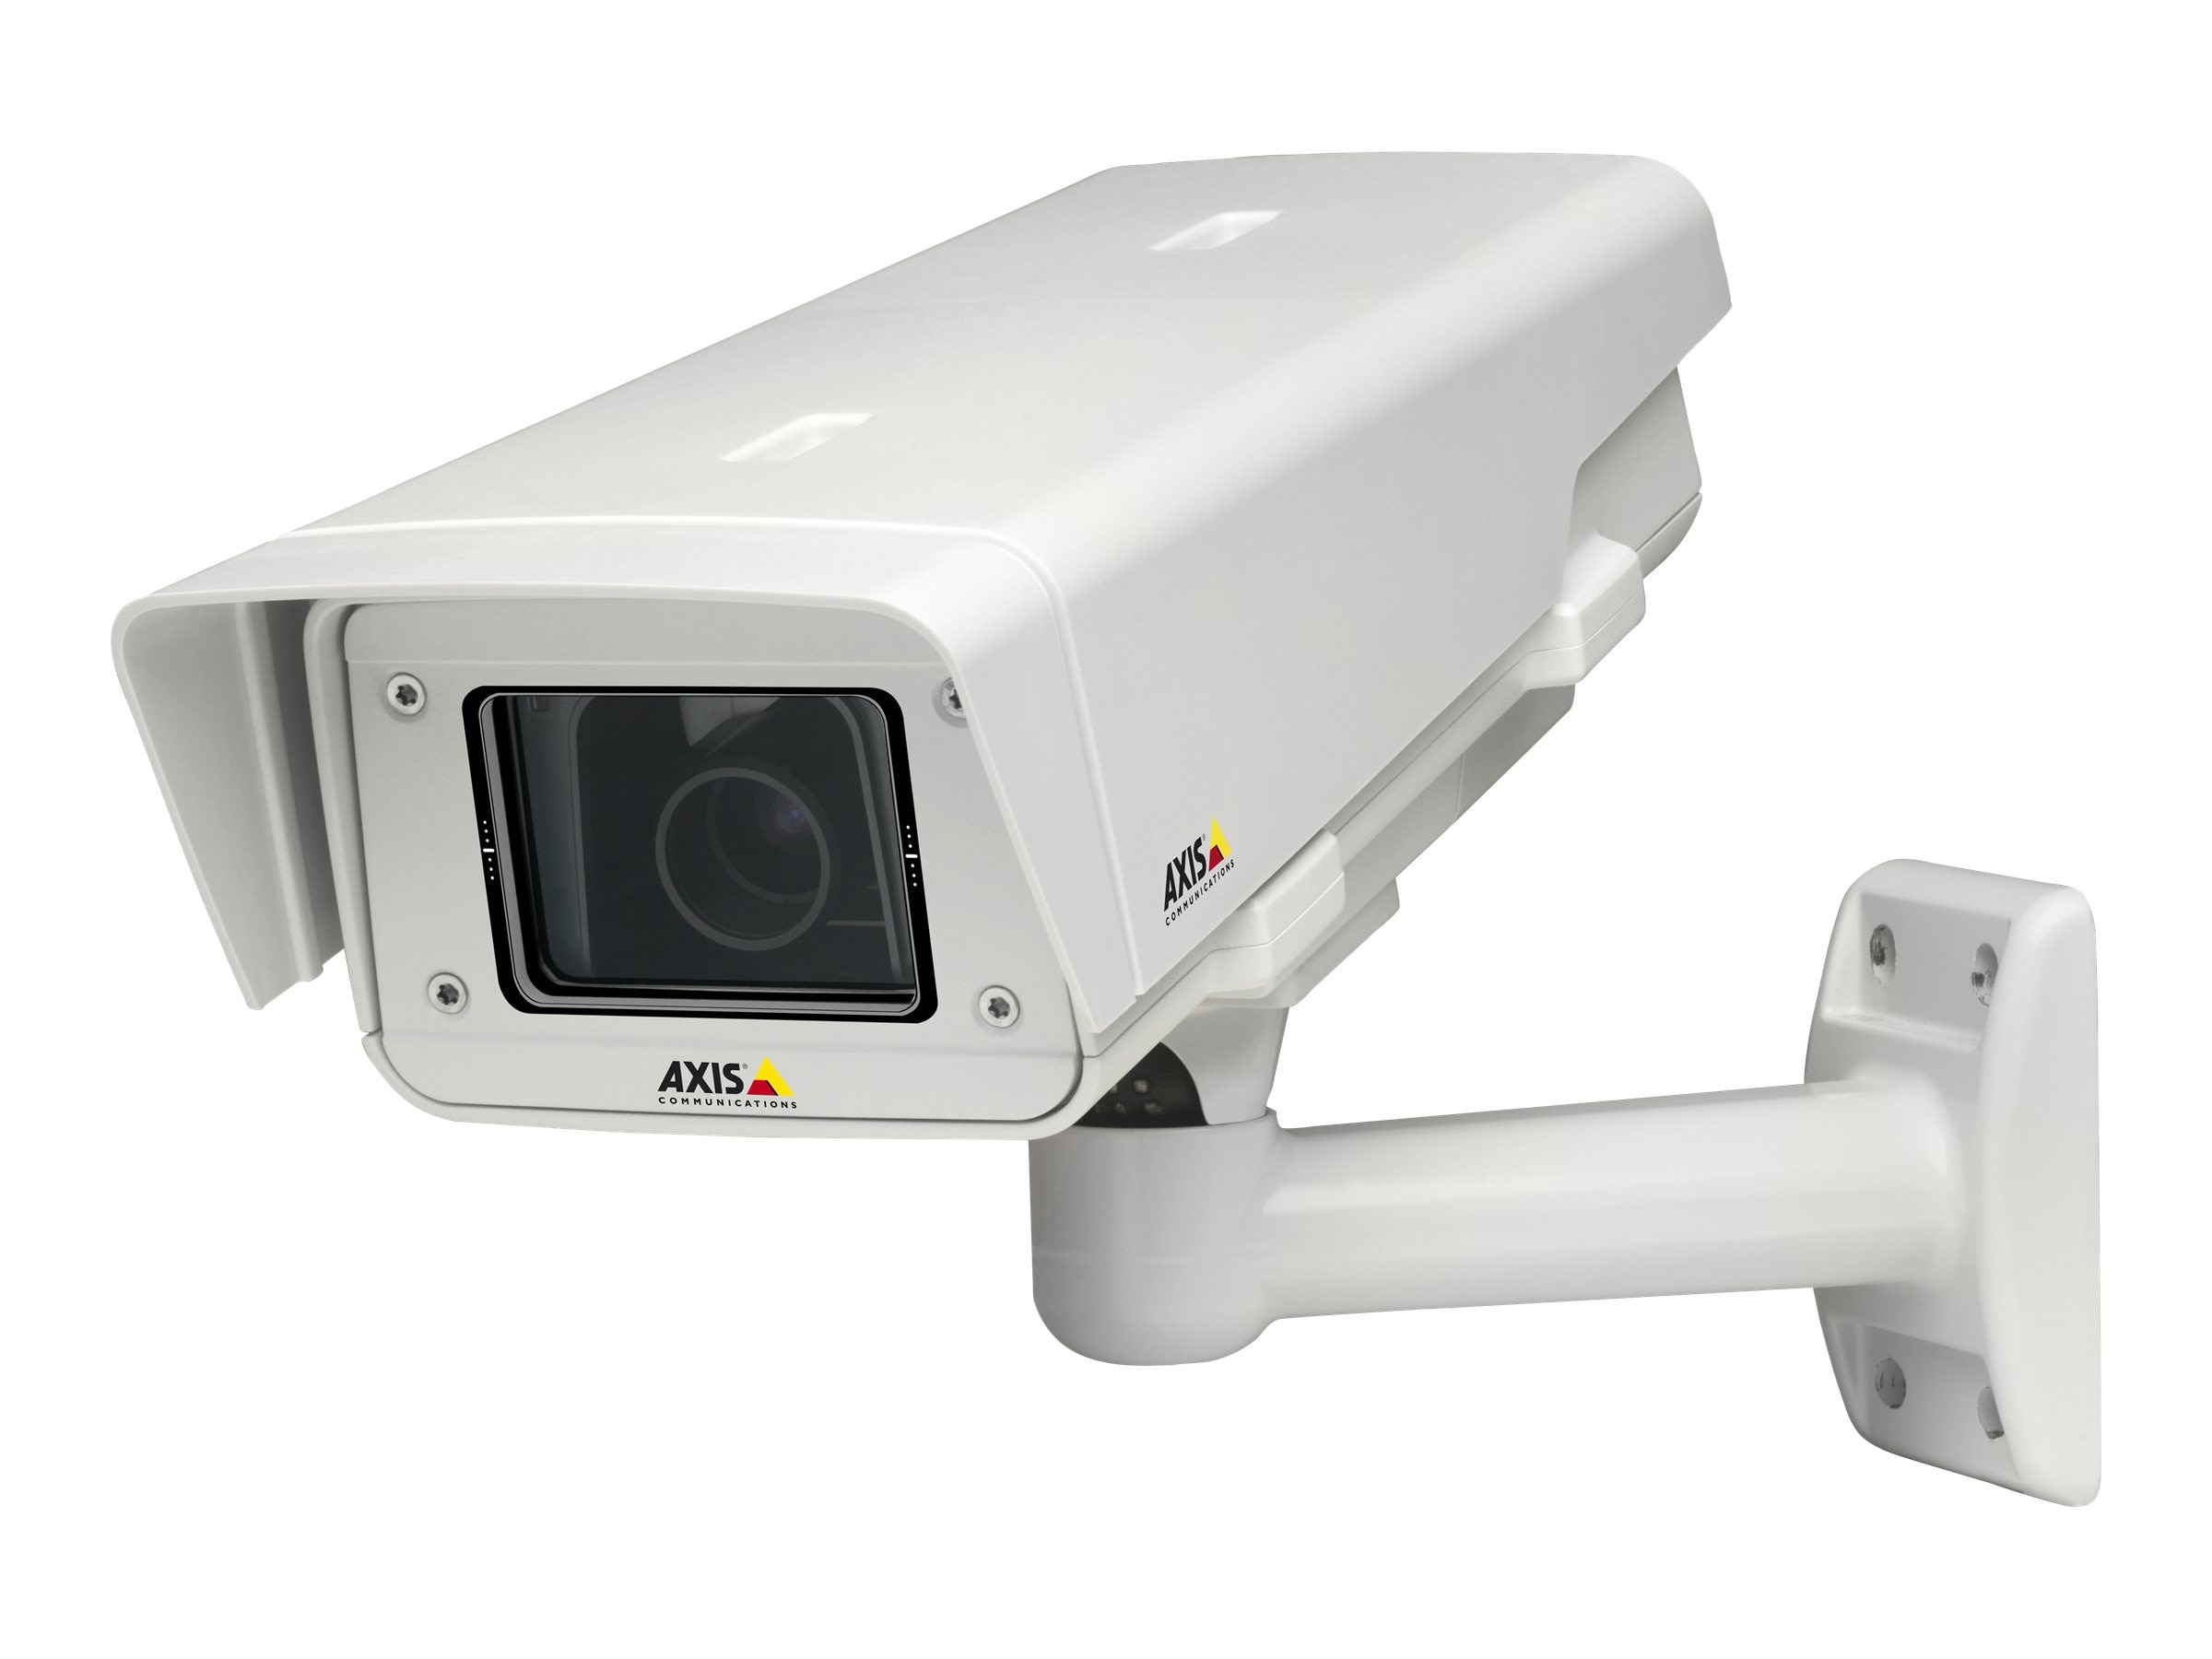 Axis P1357-E 5MPX Outdoor PoE Serial Network Camera